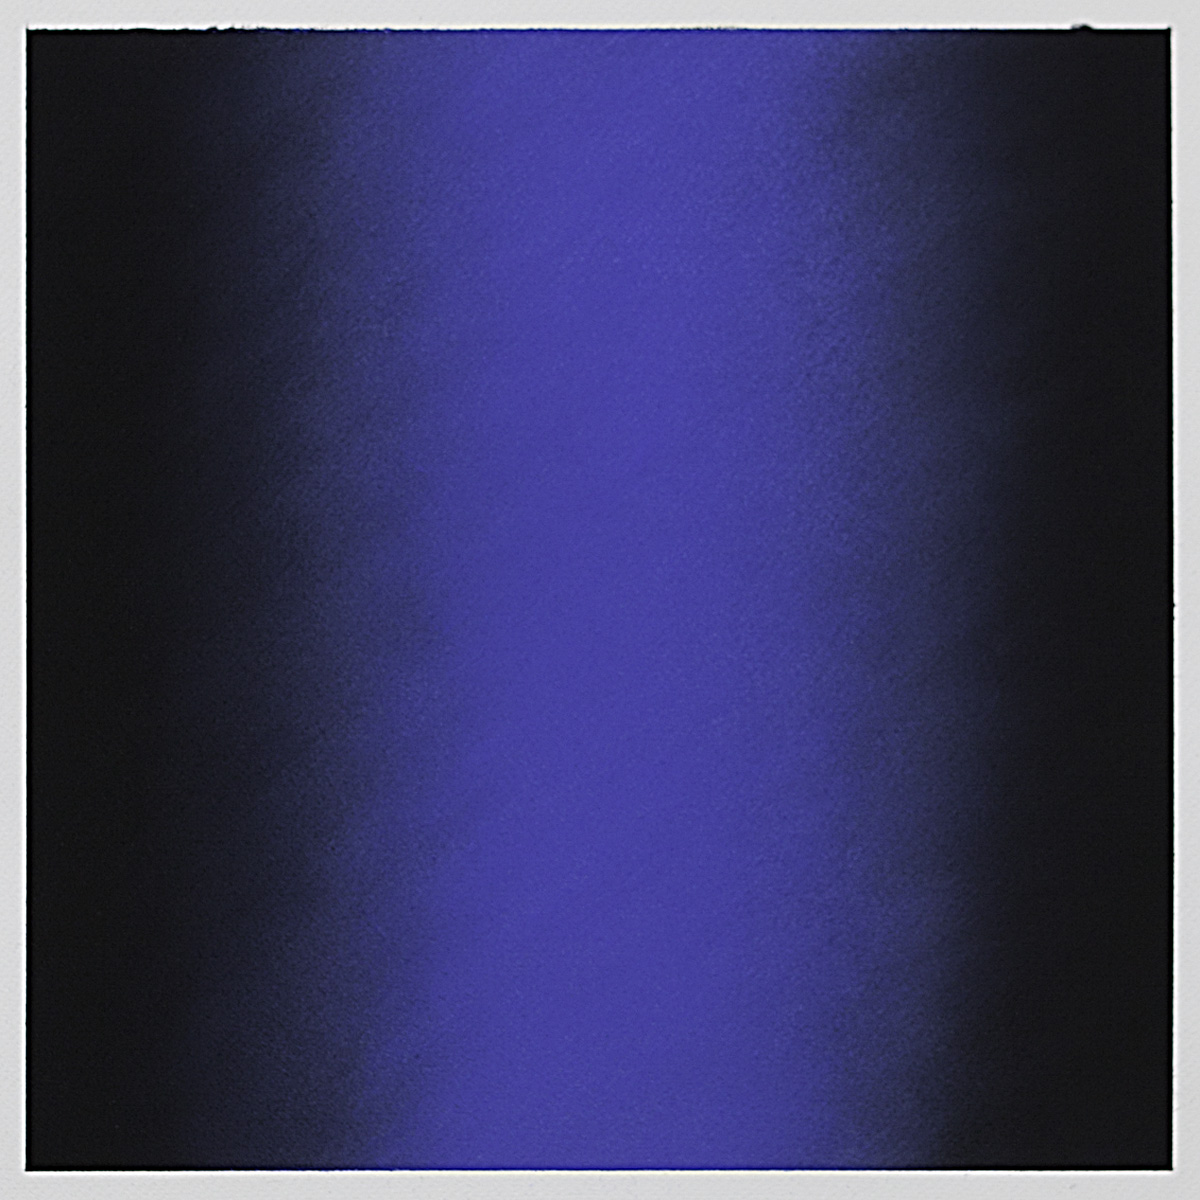 Blue (Black), Primary Red Blue Series, 2011, pastel on paper, image: 14 x 14 in. (36 x 36 cm.), sheet: 30 x 22 in. (76 x 56 cm.)